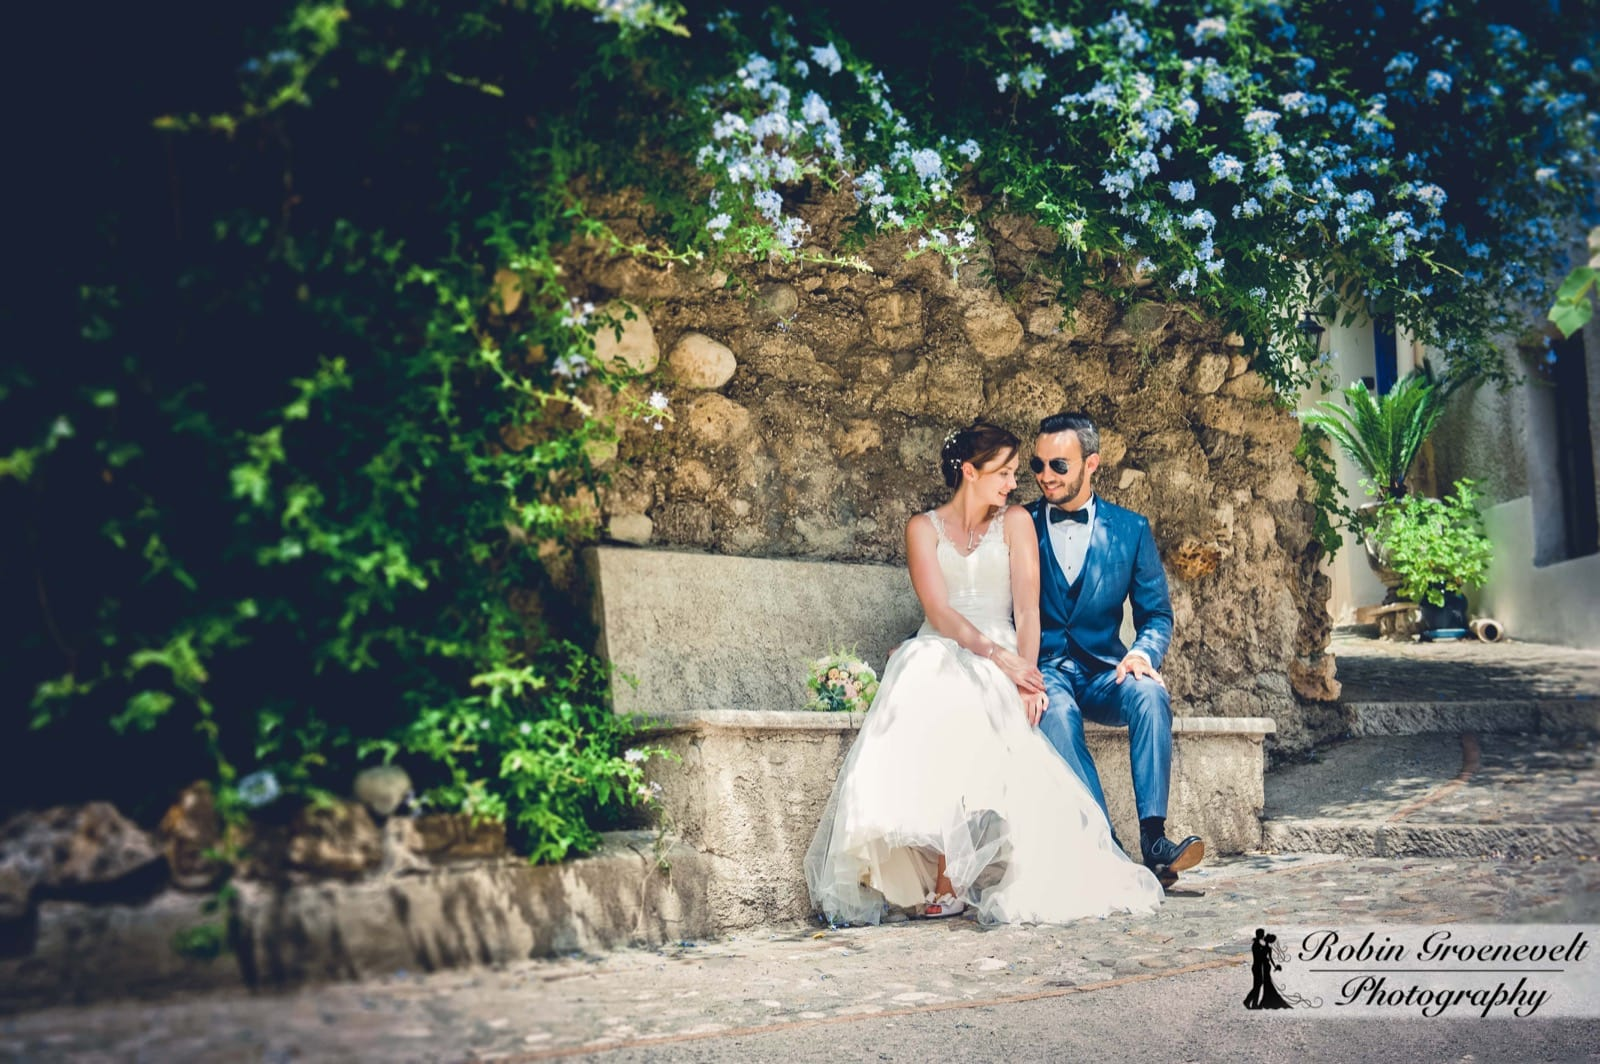 Nina's Wedding in Auribeau sur SIagne on the French Riviera-29